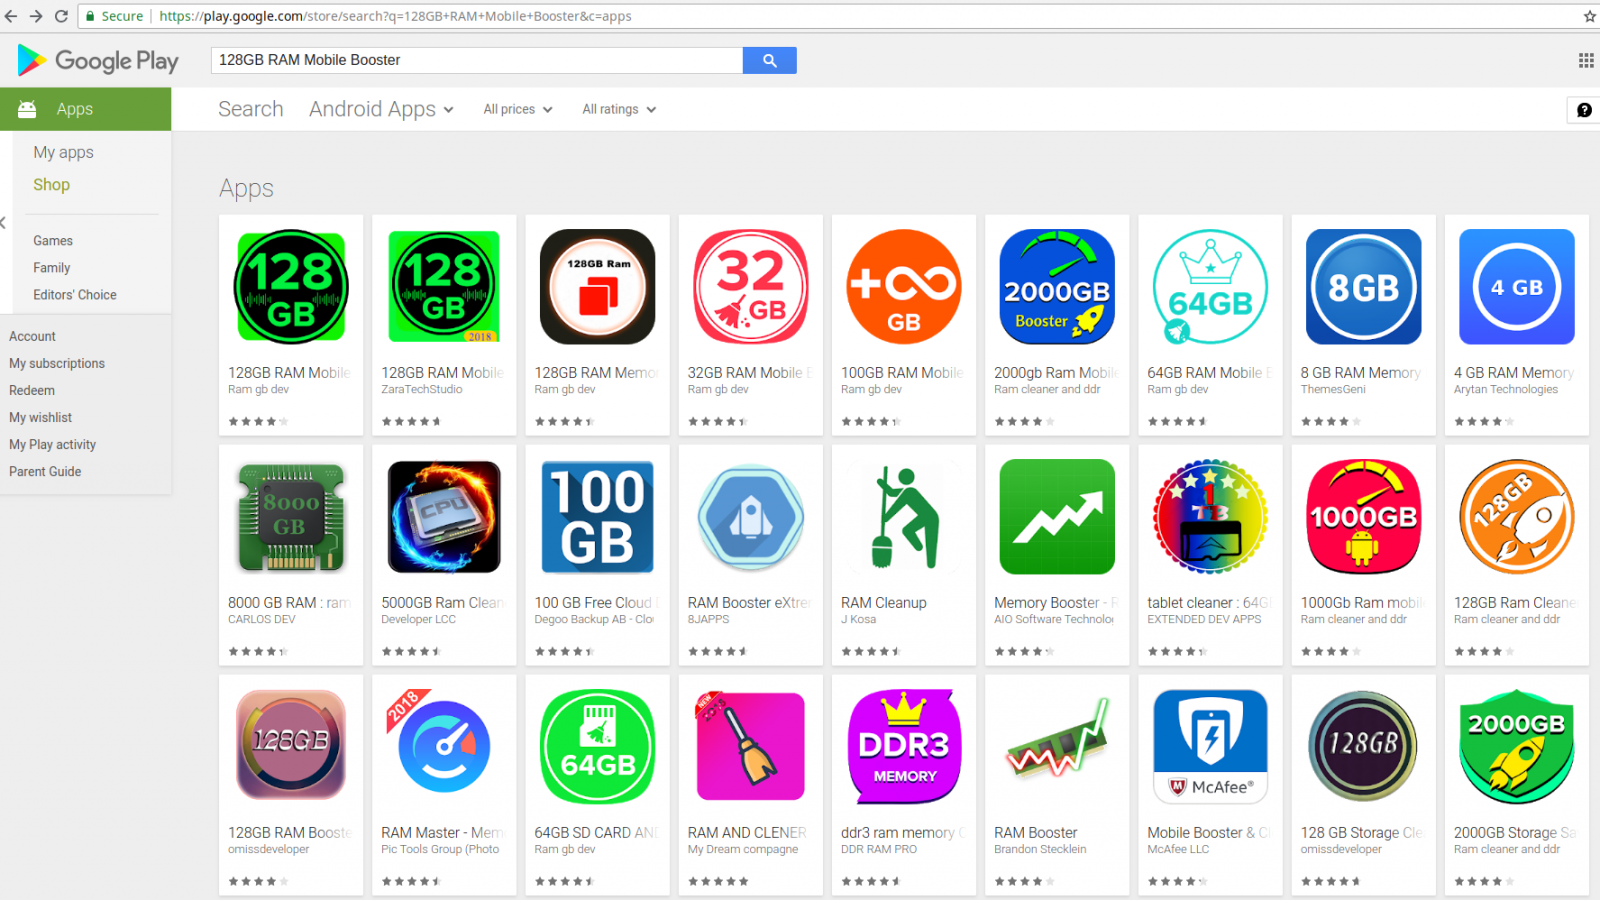 Banking Trojans and Shady Apps Galore In Google Play